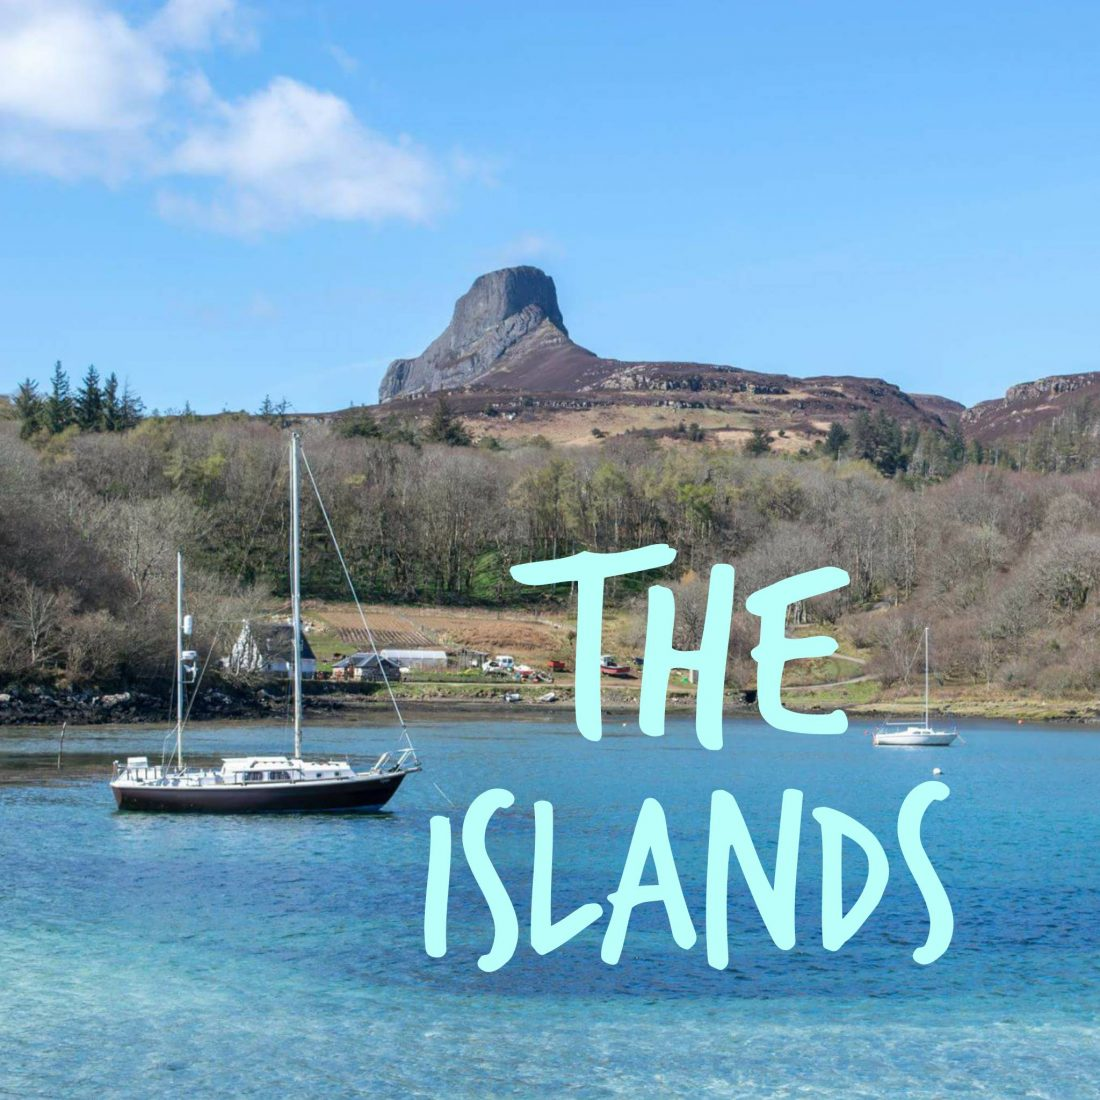 The Scottish Islands Travel Blog